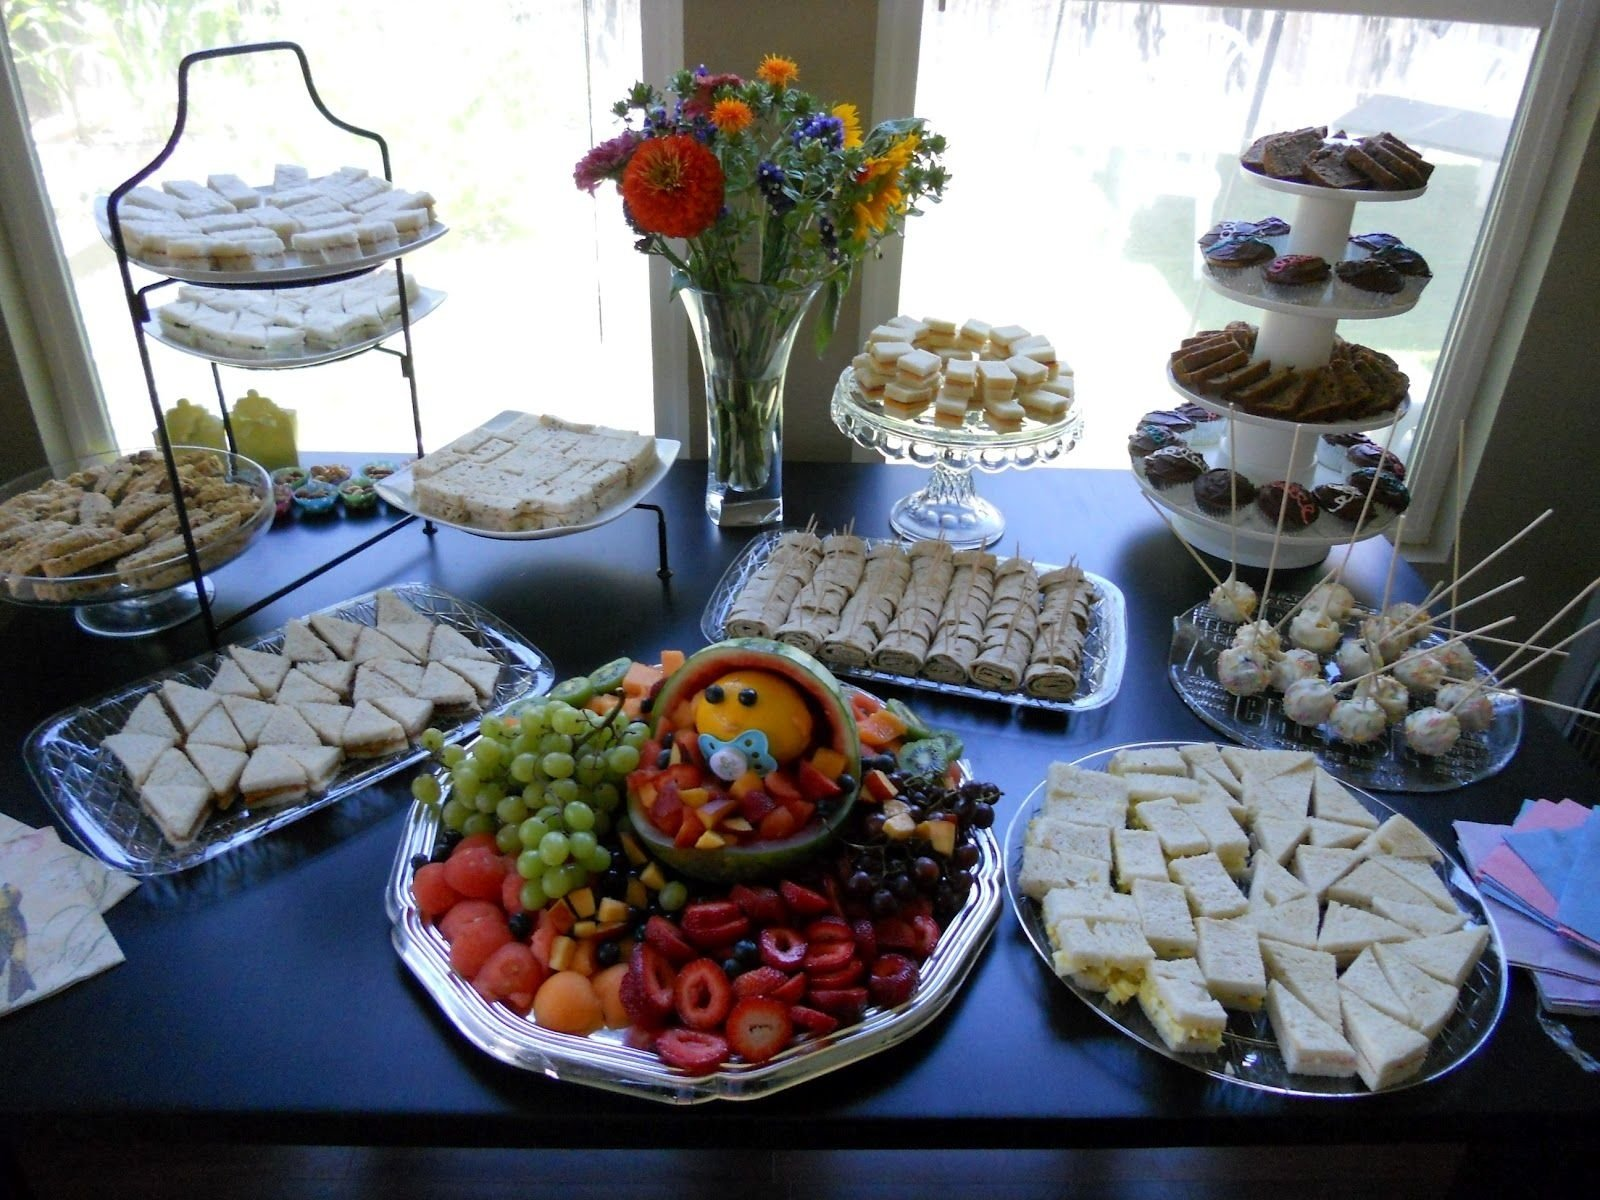 10 Attractive Baby Shower Food Ideas For A Boy table setup for a baby shower gorgeous food setup baby shower 2020